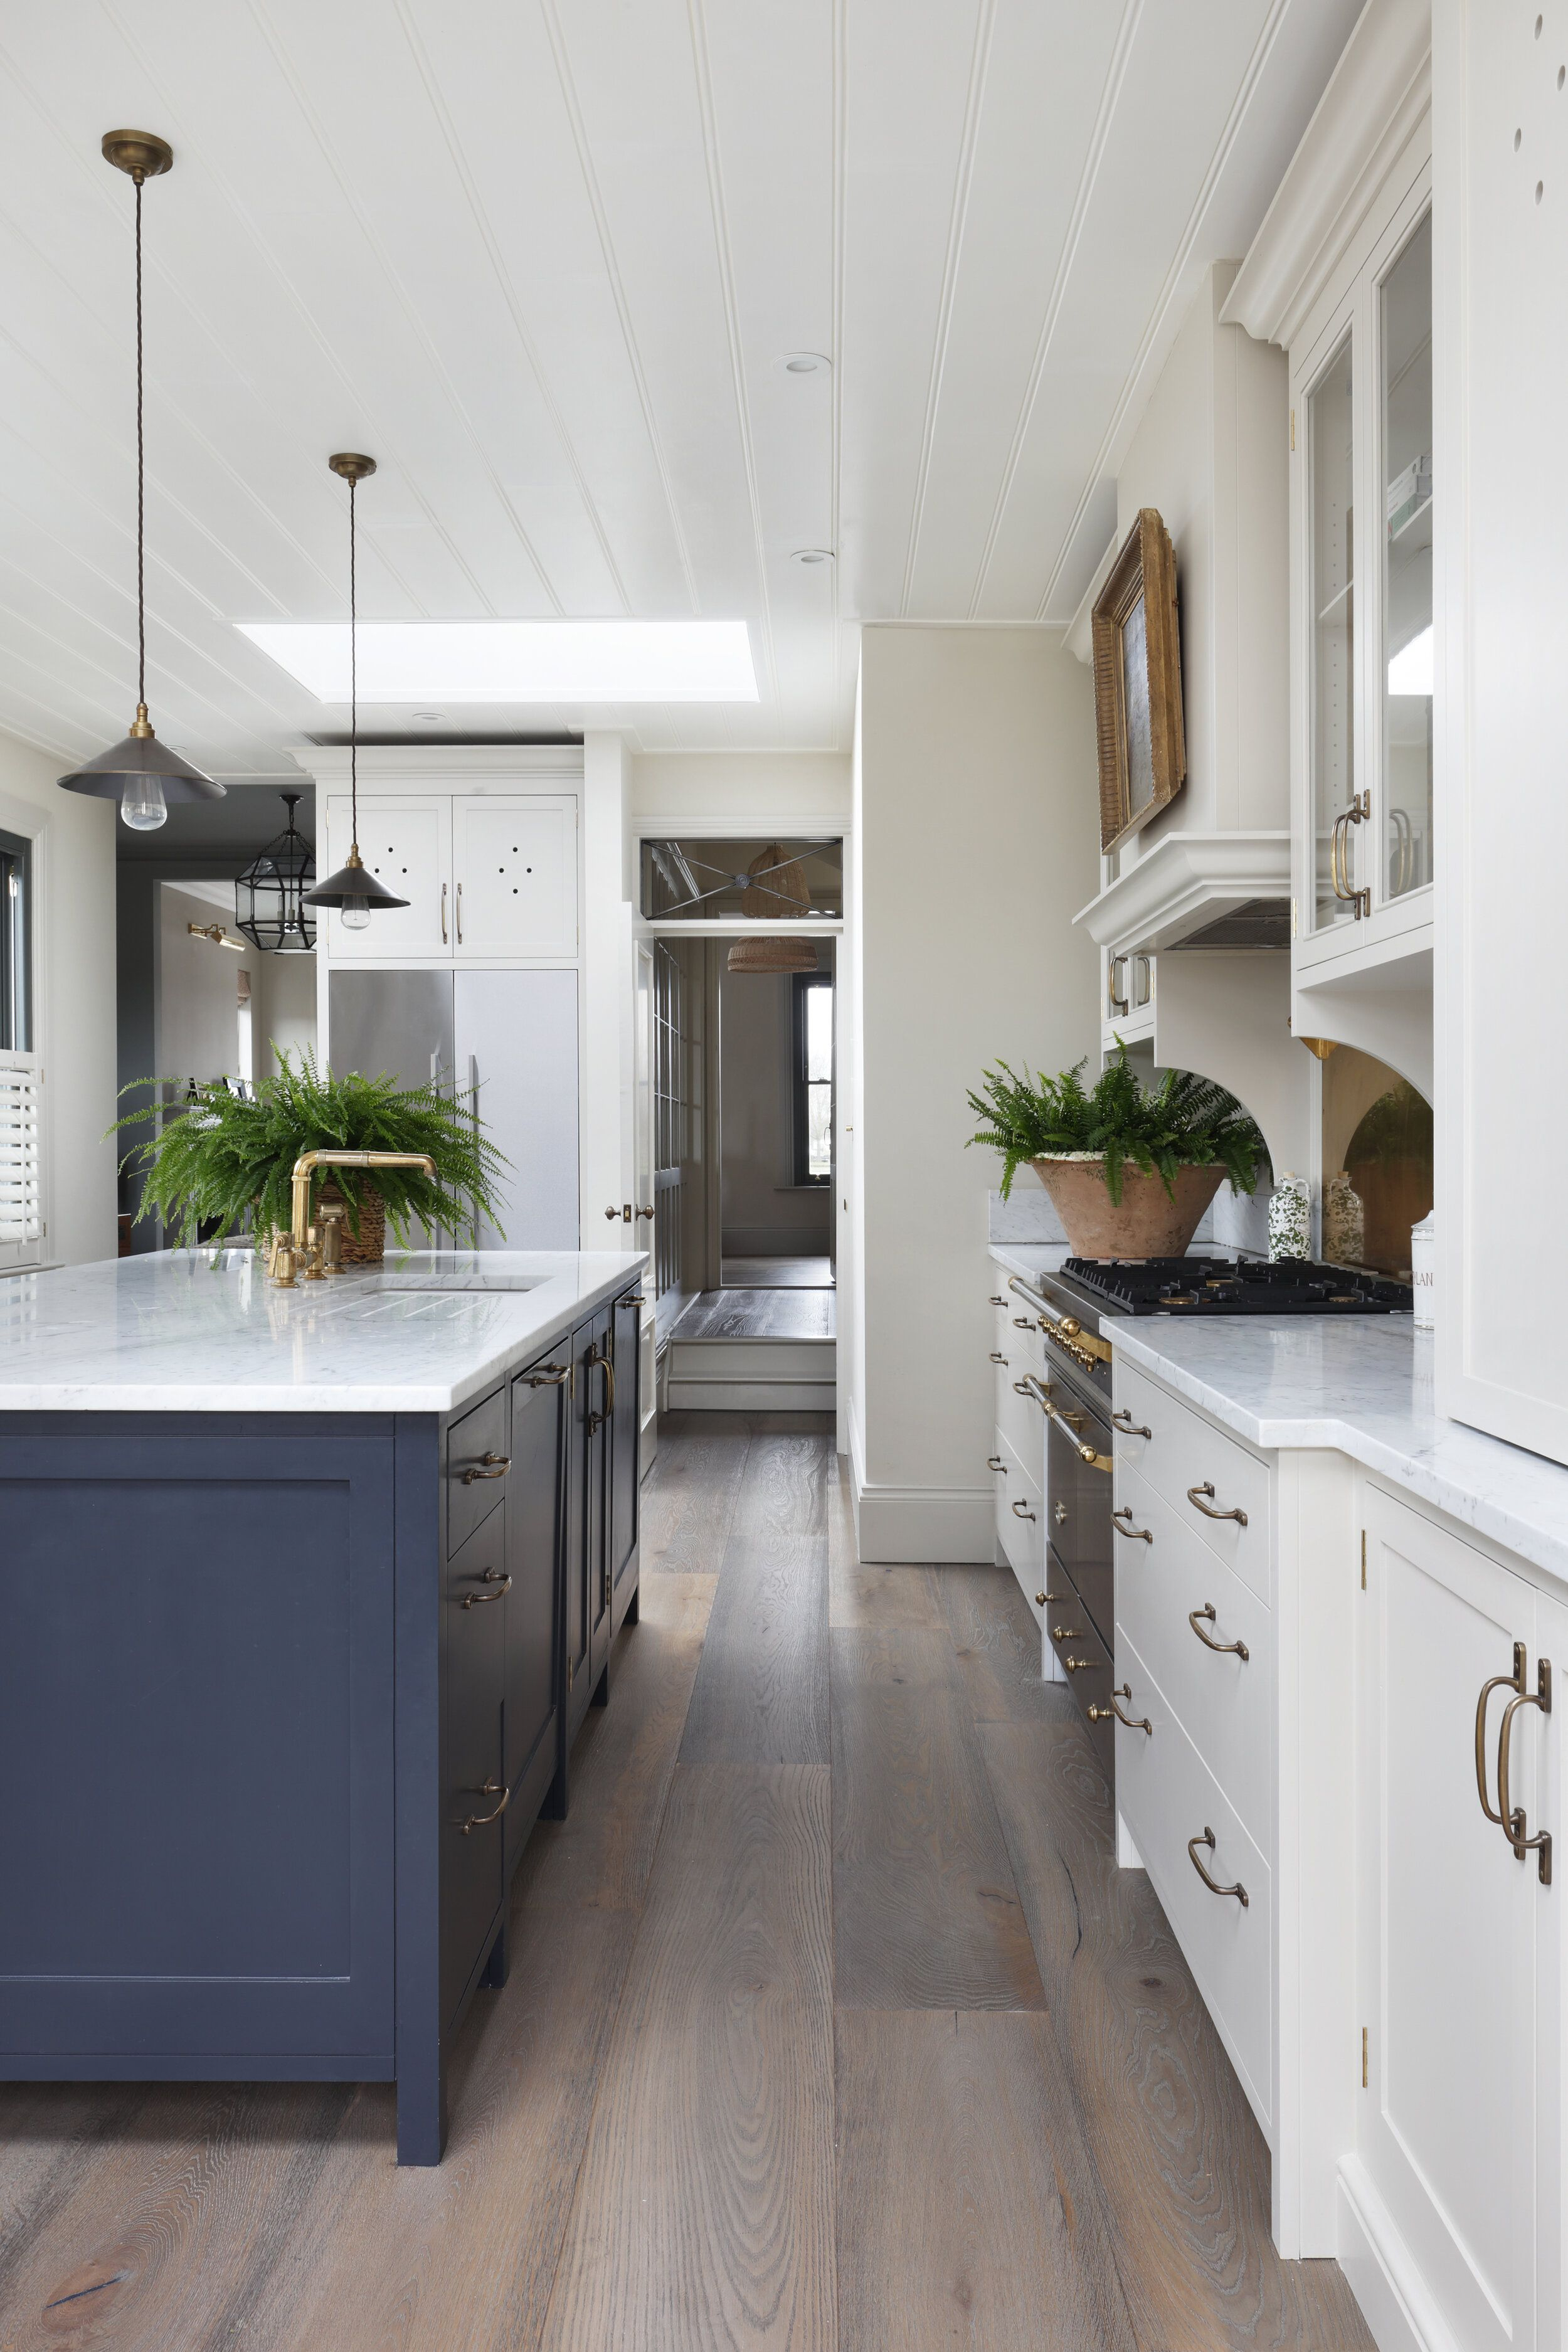 Farmhouse Kitchen With Natural Skylight Kitchen Shiplap Kitchen Interior Skylight Kitchen